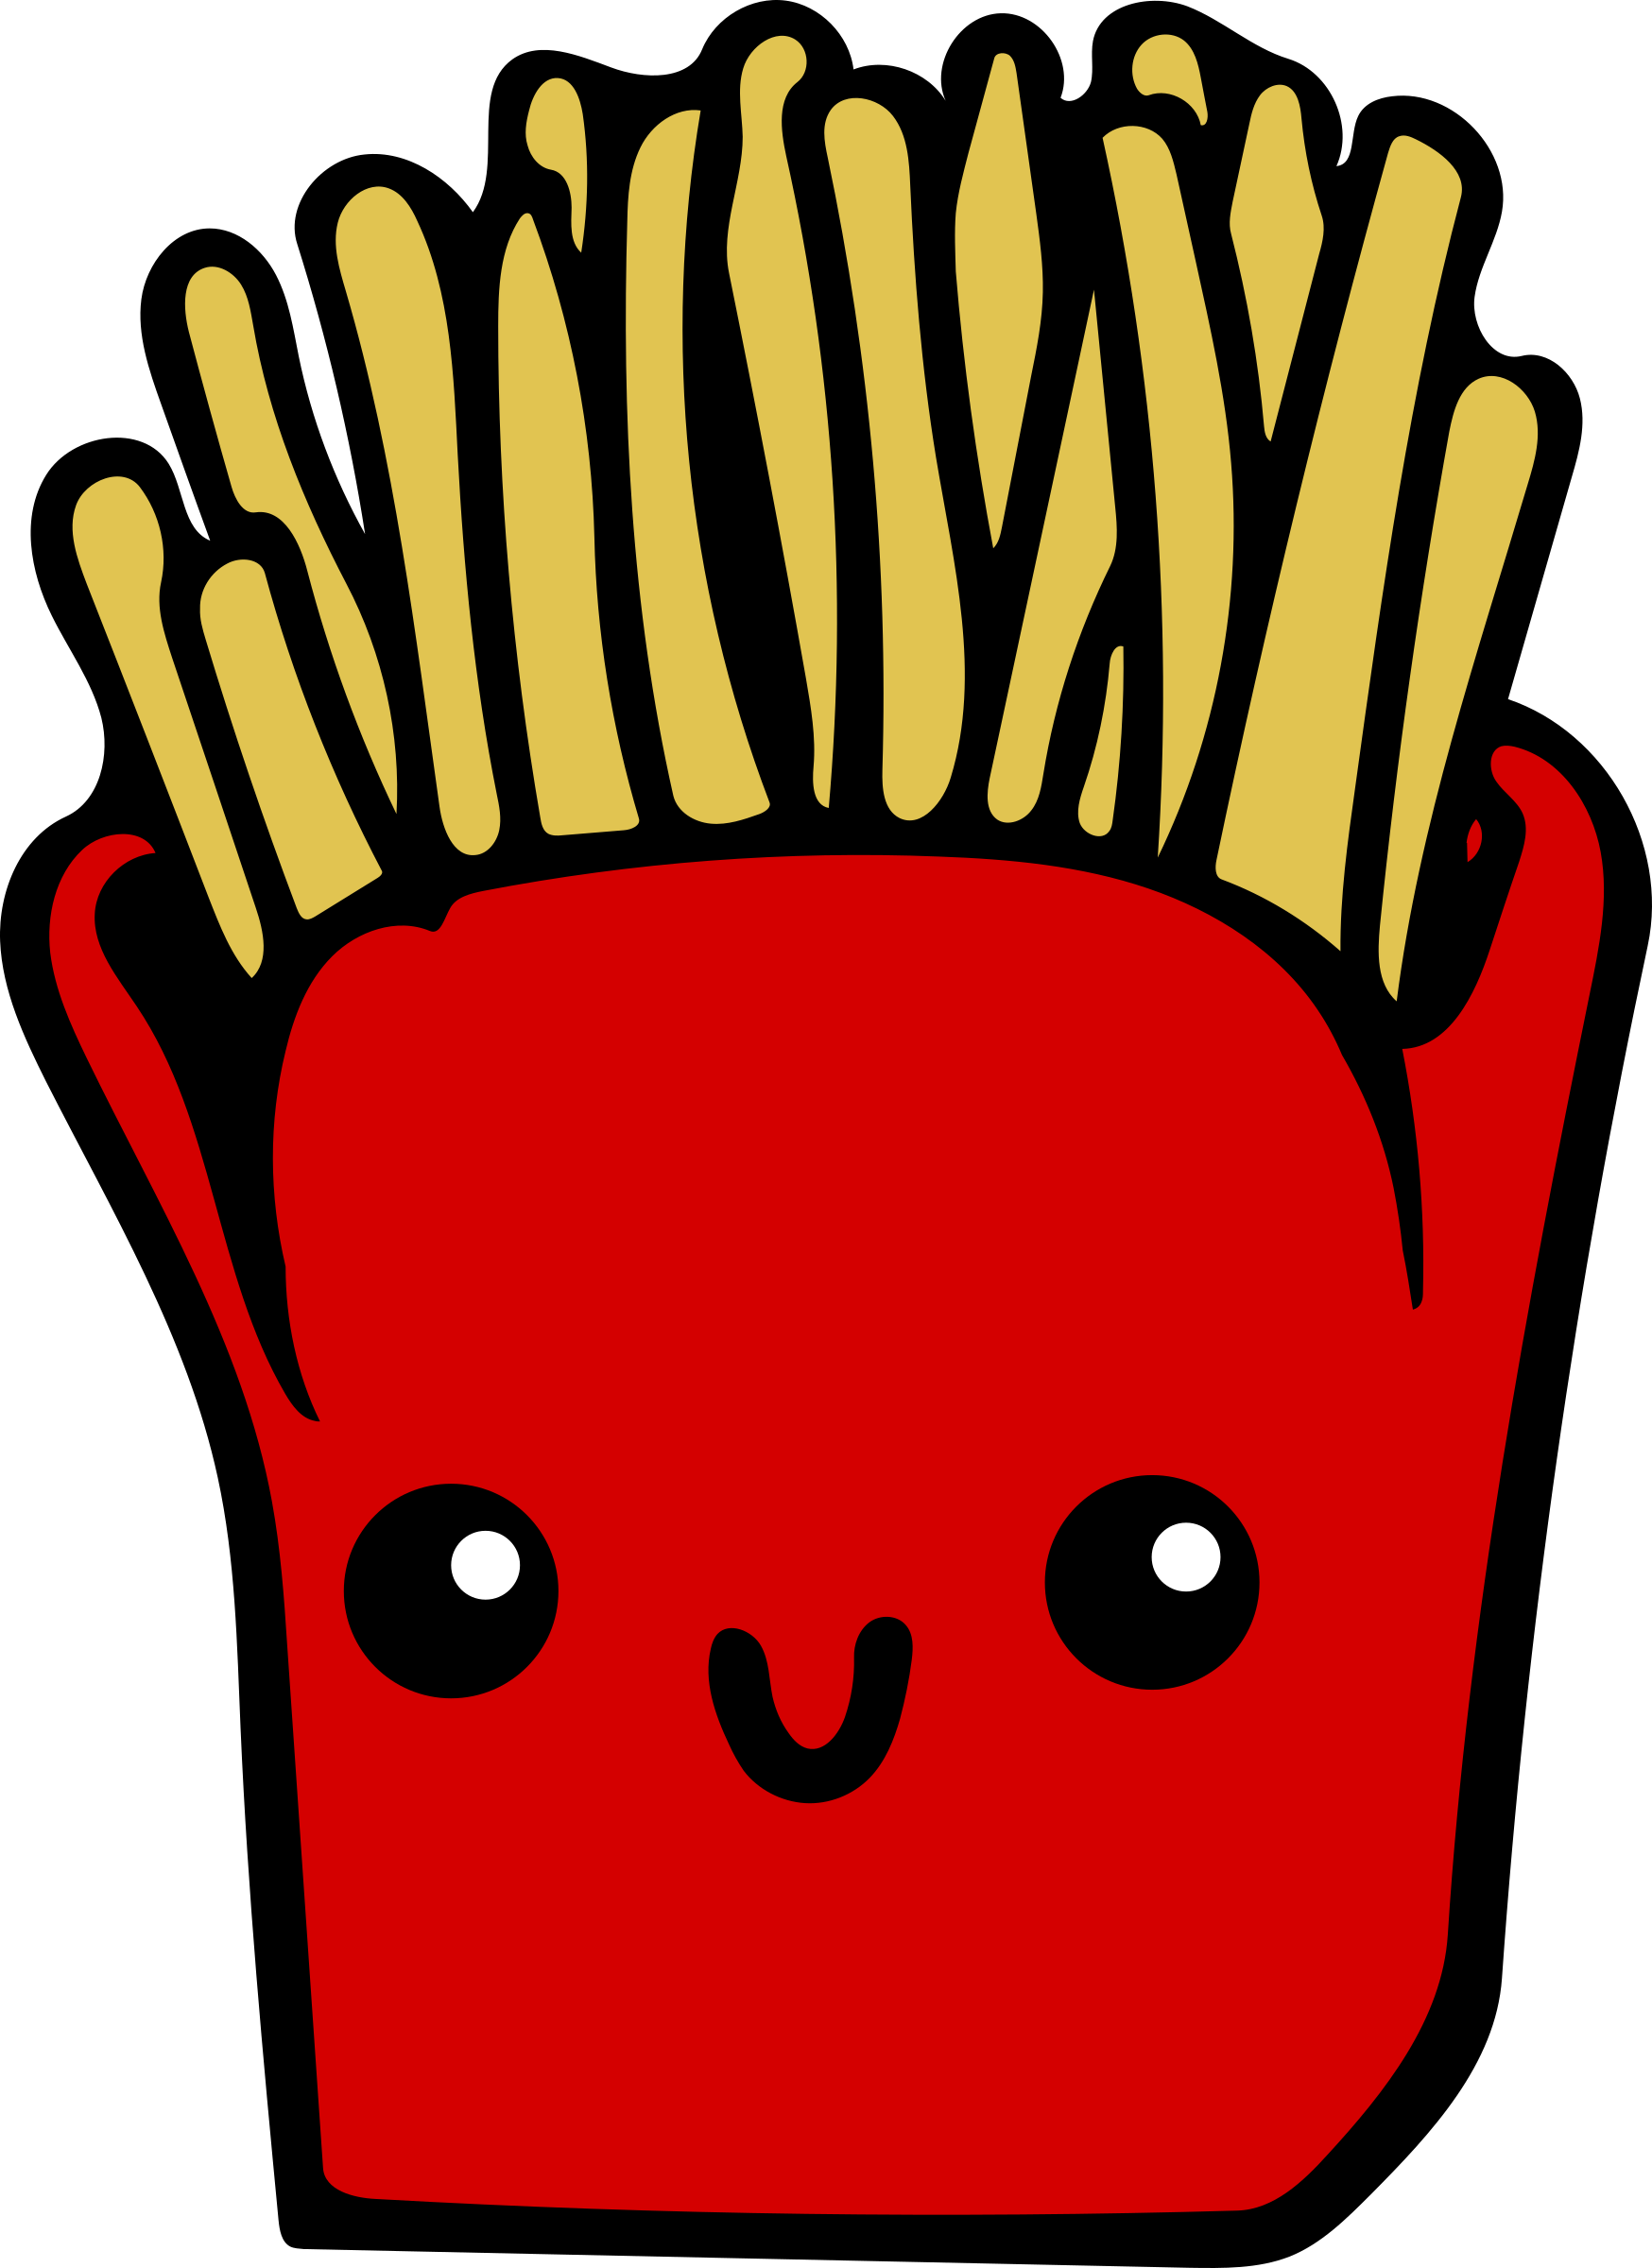 Clipart - Kawaii Fries - Colour